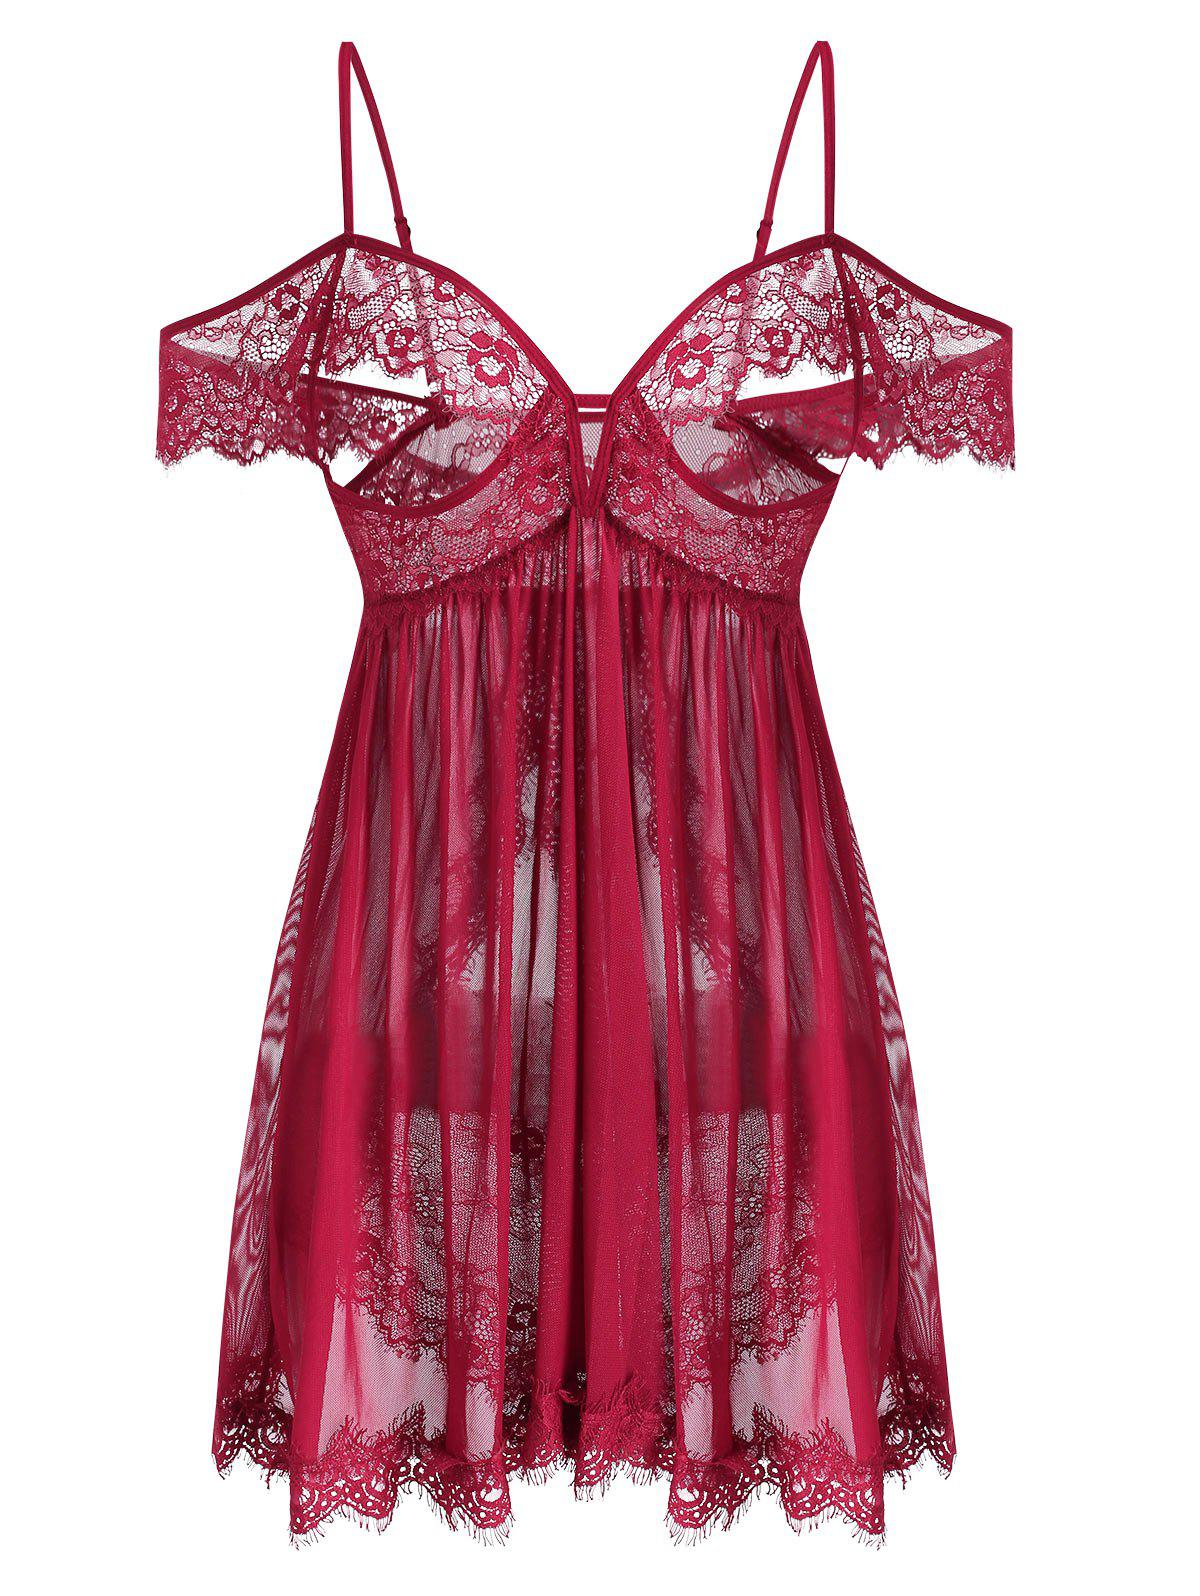 Open Cup Cold Shoulder Lace Sheer Mesh Plus Size Lingerie Babydoll - RED XL